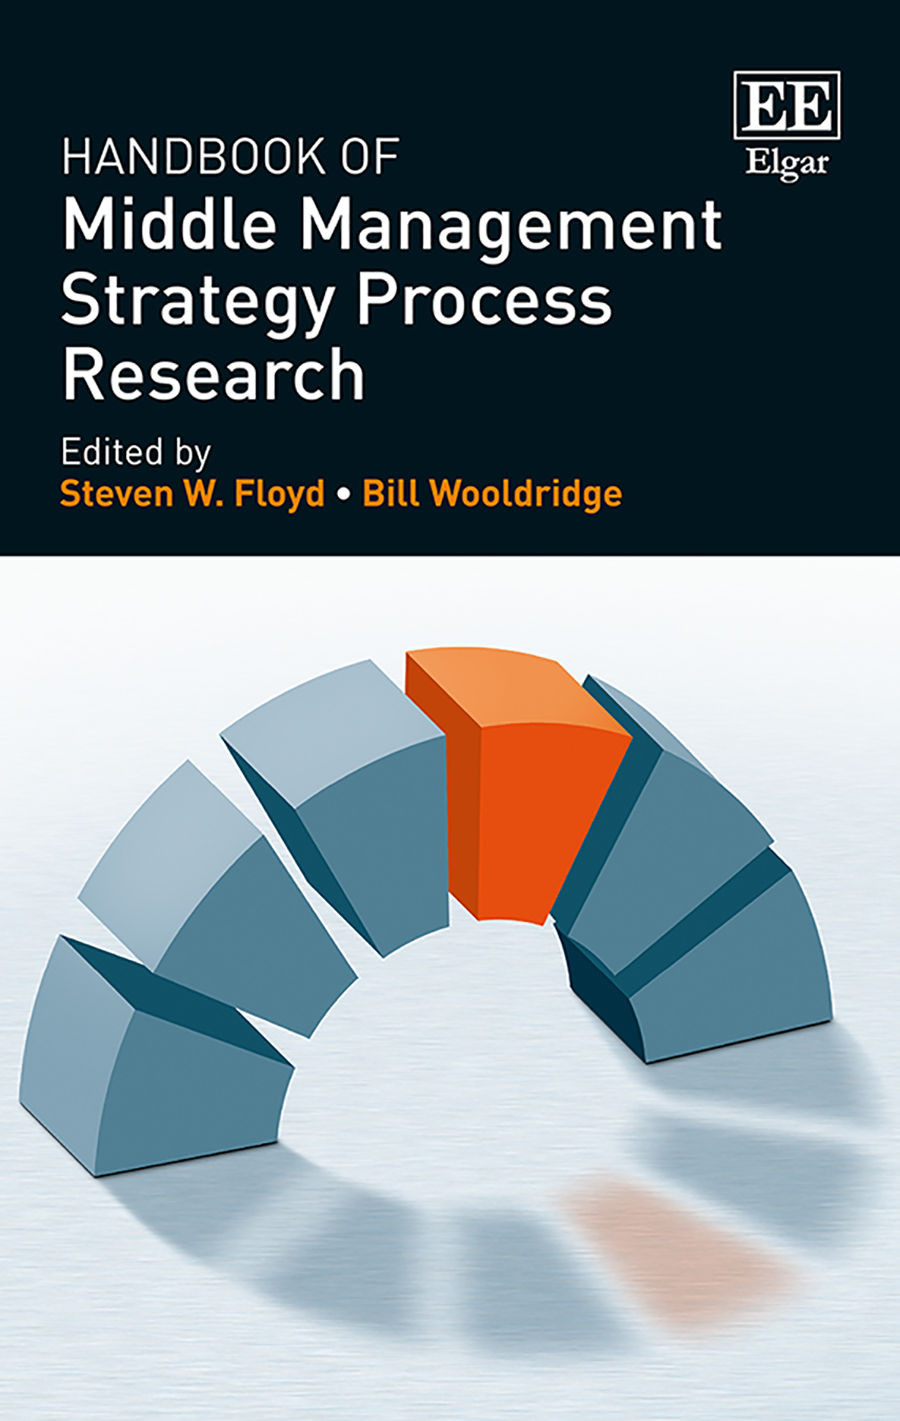 Download Ebook Handbook of Middle Management Strategy Process Research by Steven W. Floyd Pdf